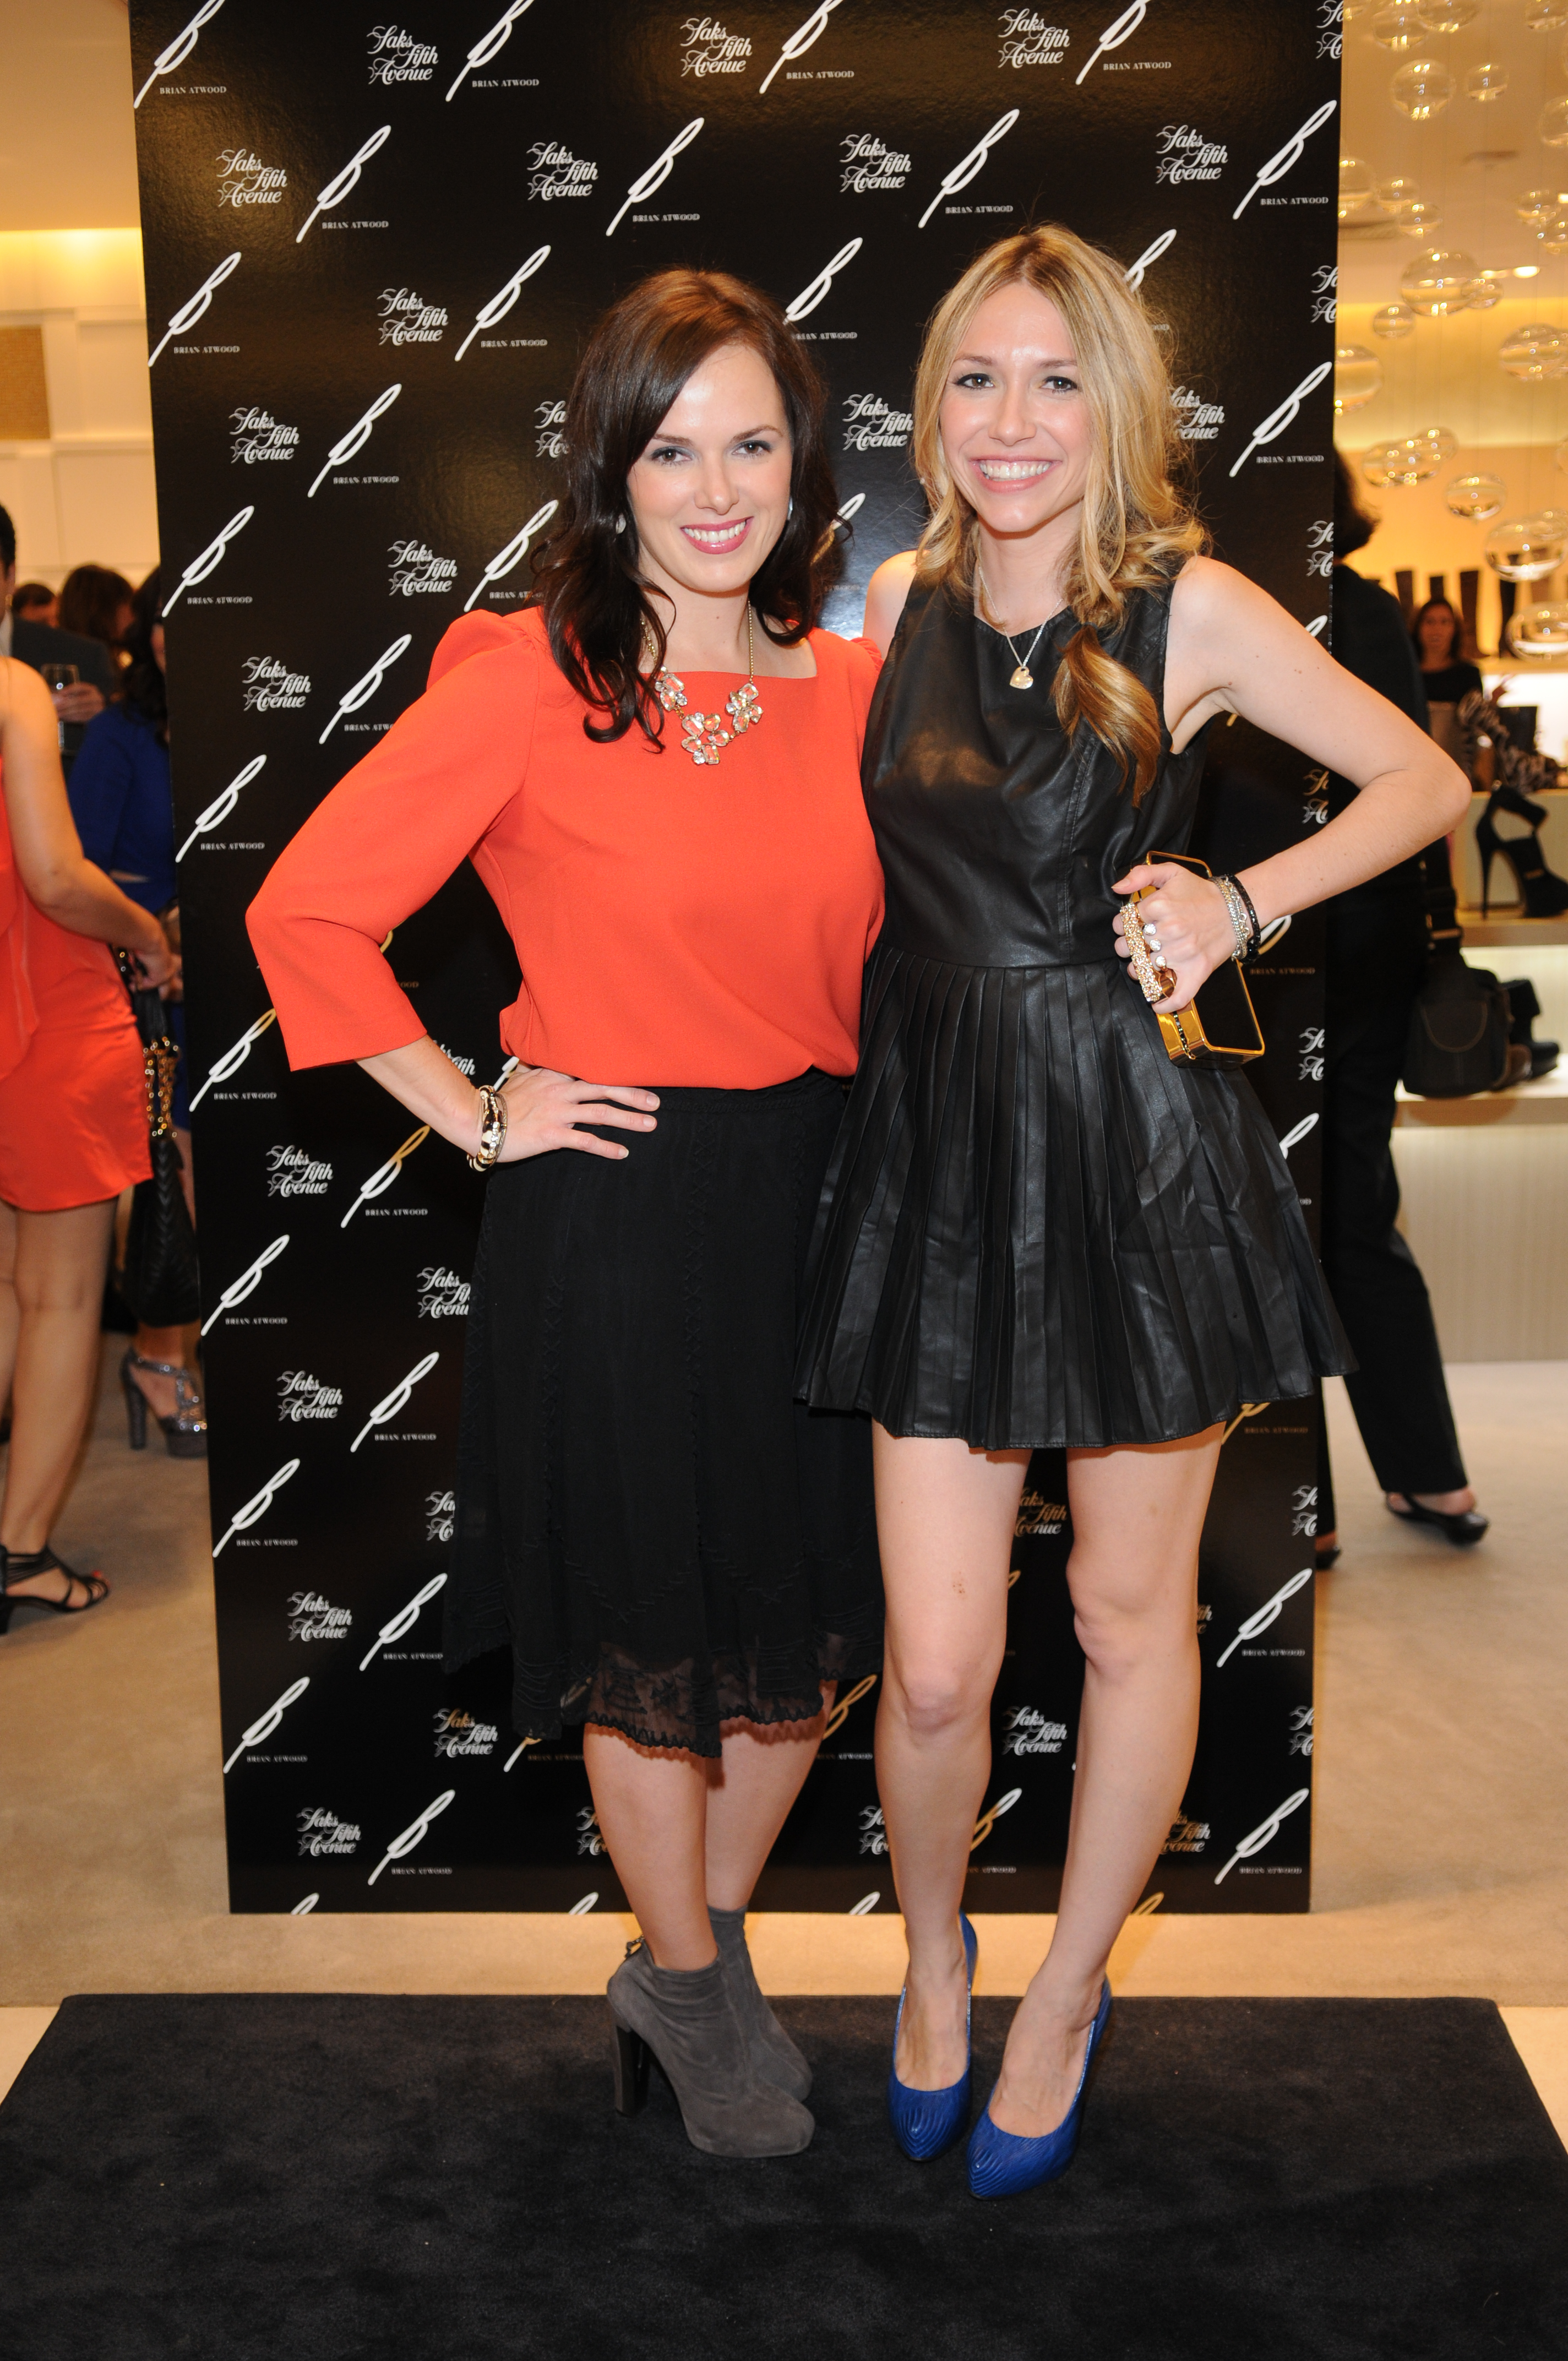 B Brian Atwood Launch at Saks: Tiffany Whiteley and Lauren Pray